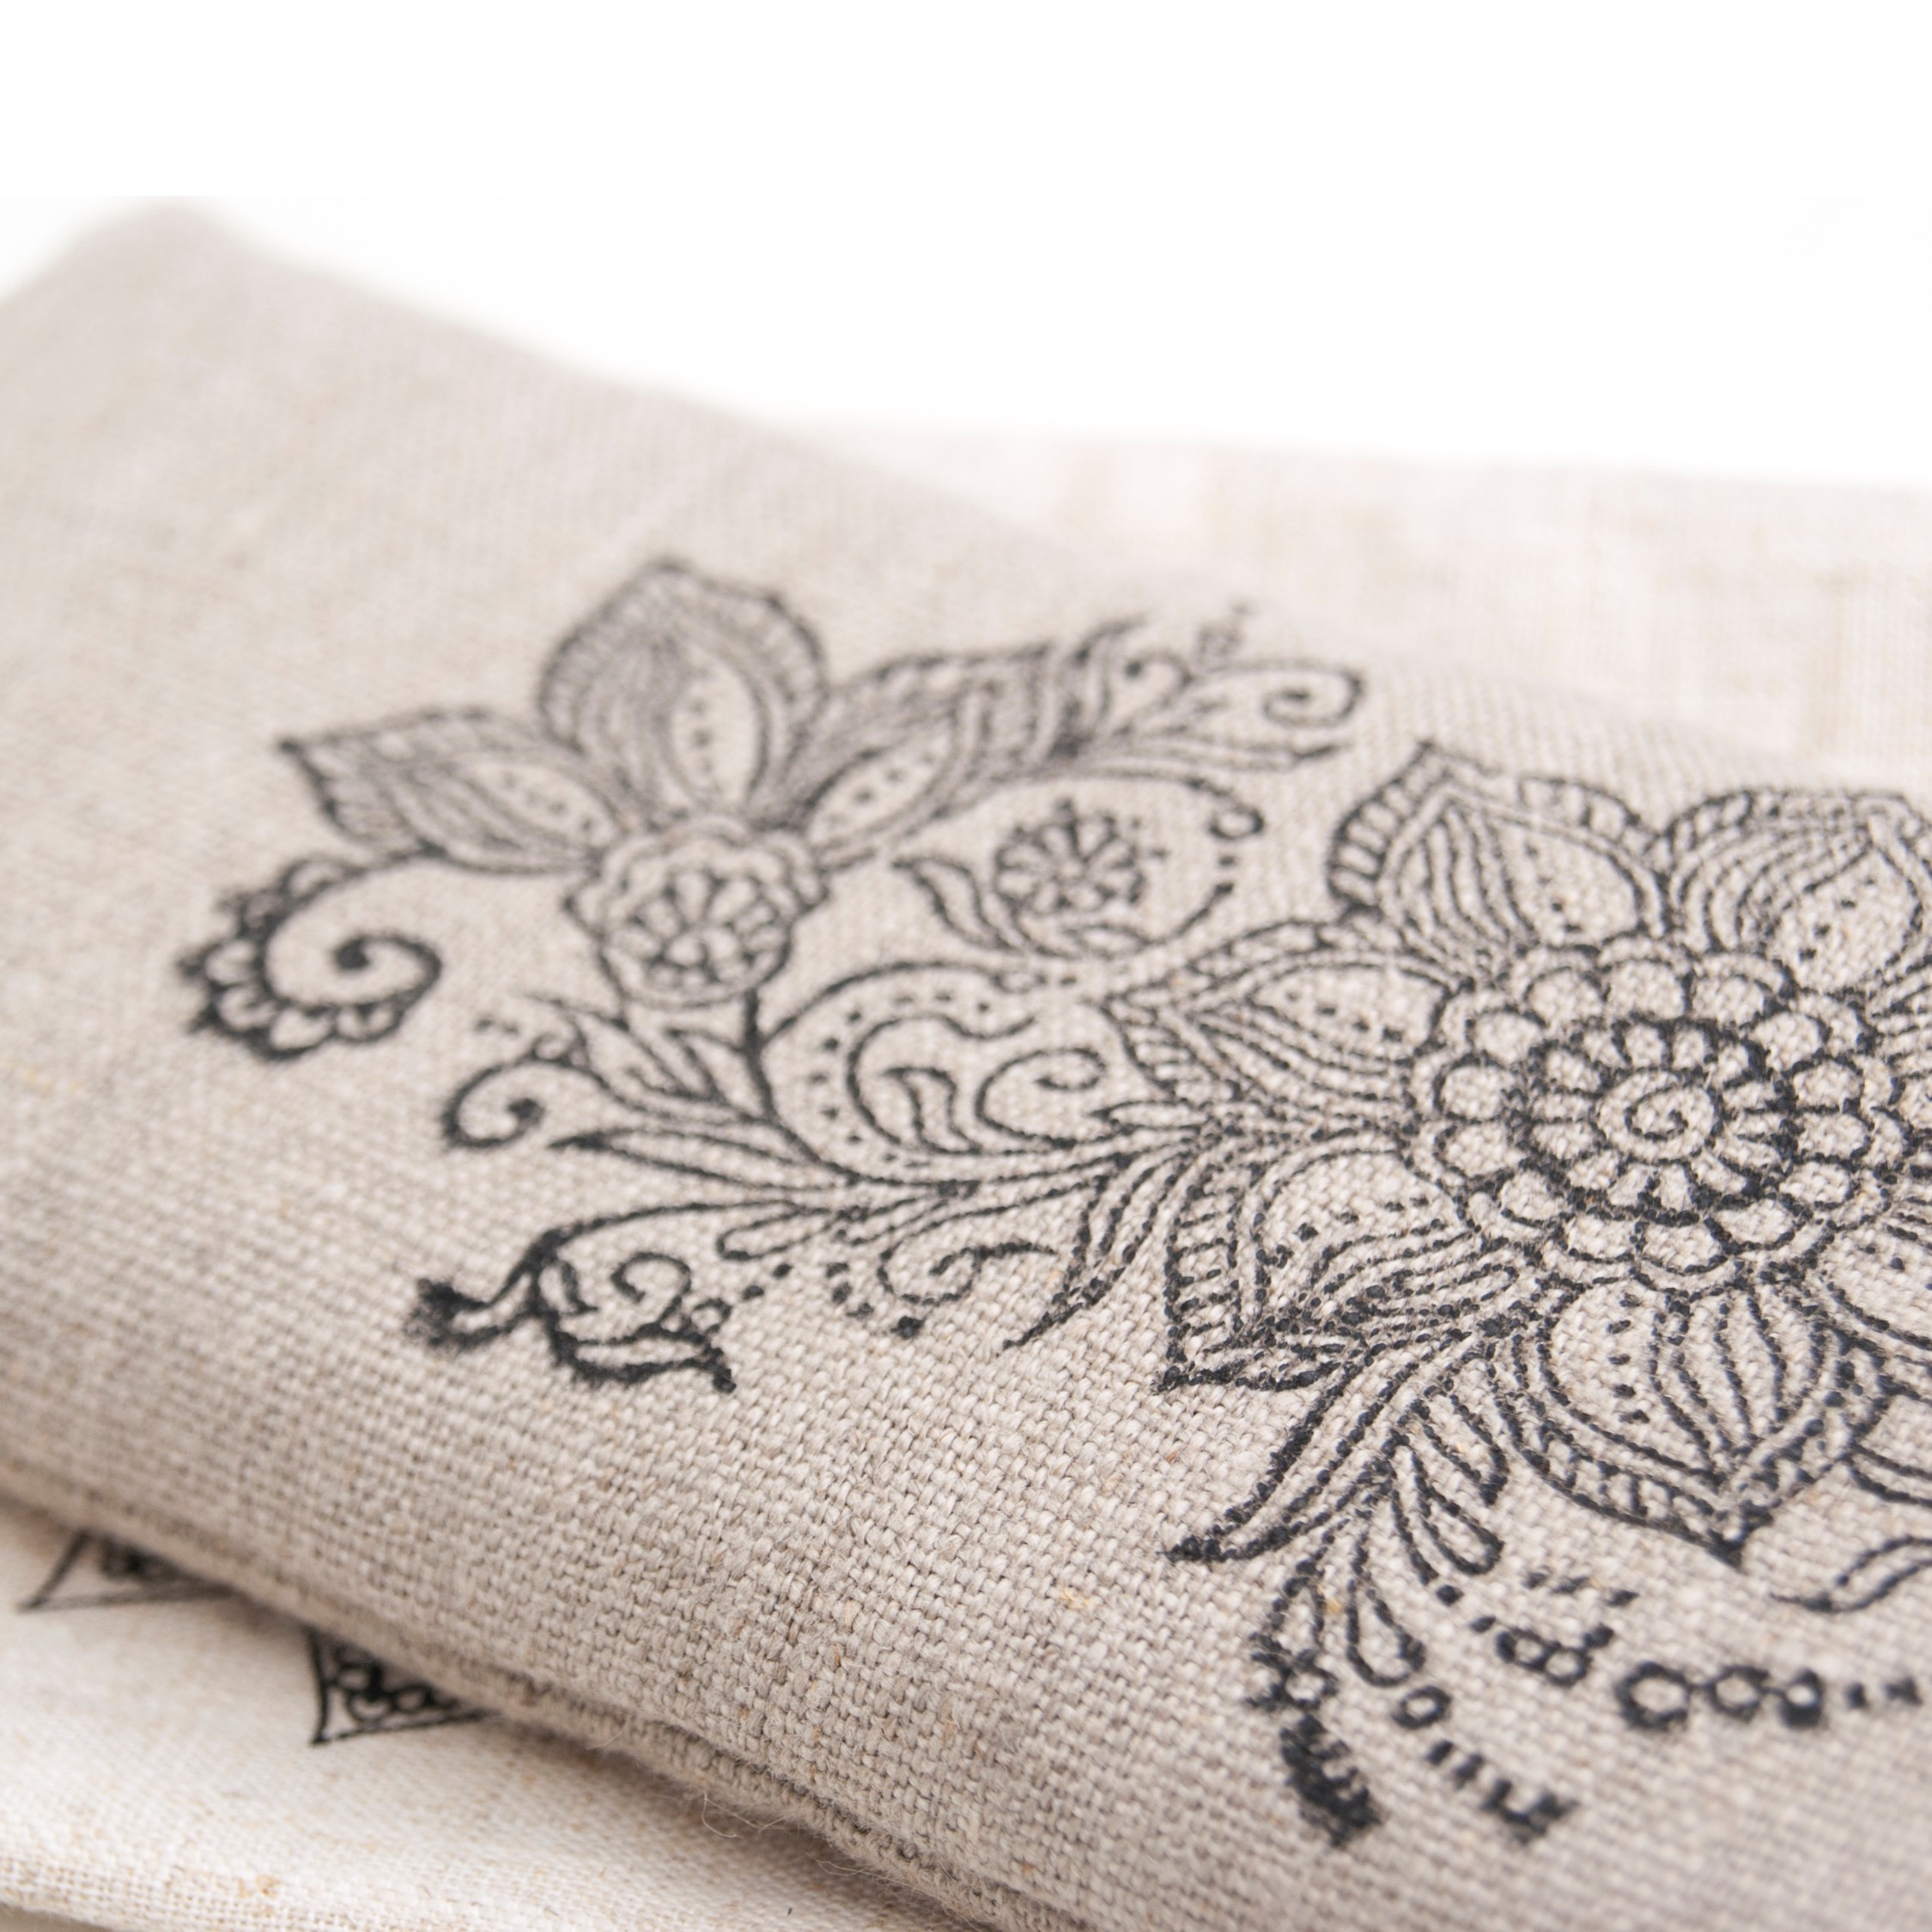 Mehndi print on the flax yoga eye pillow by Pure Prana Label